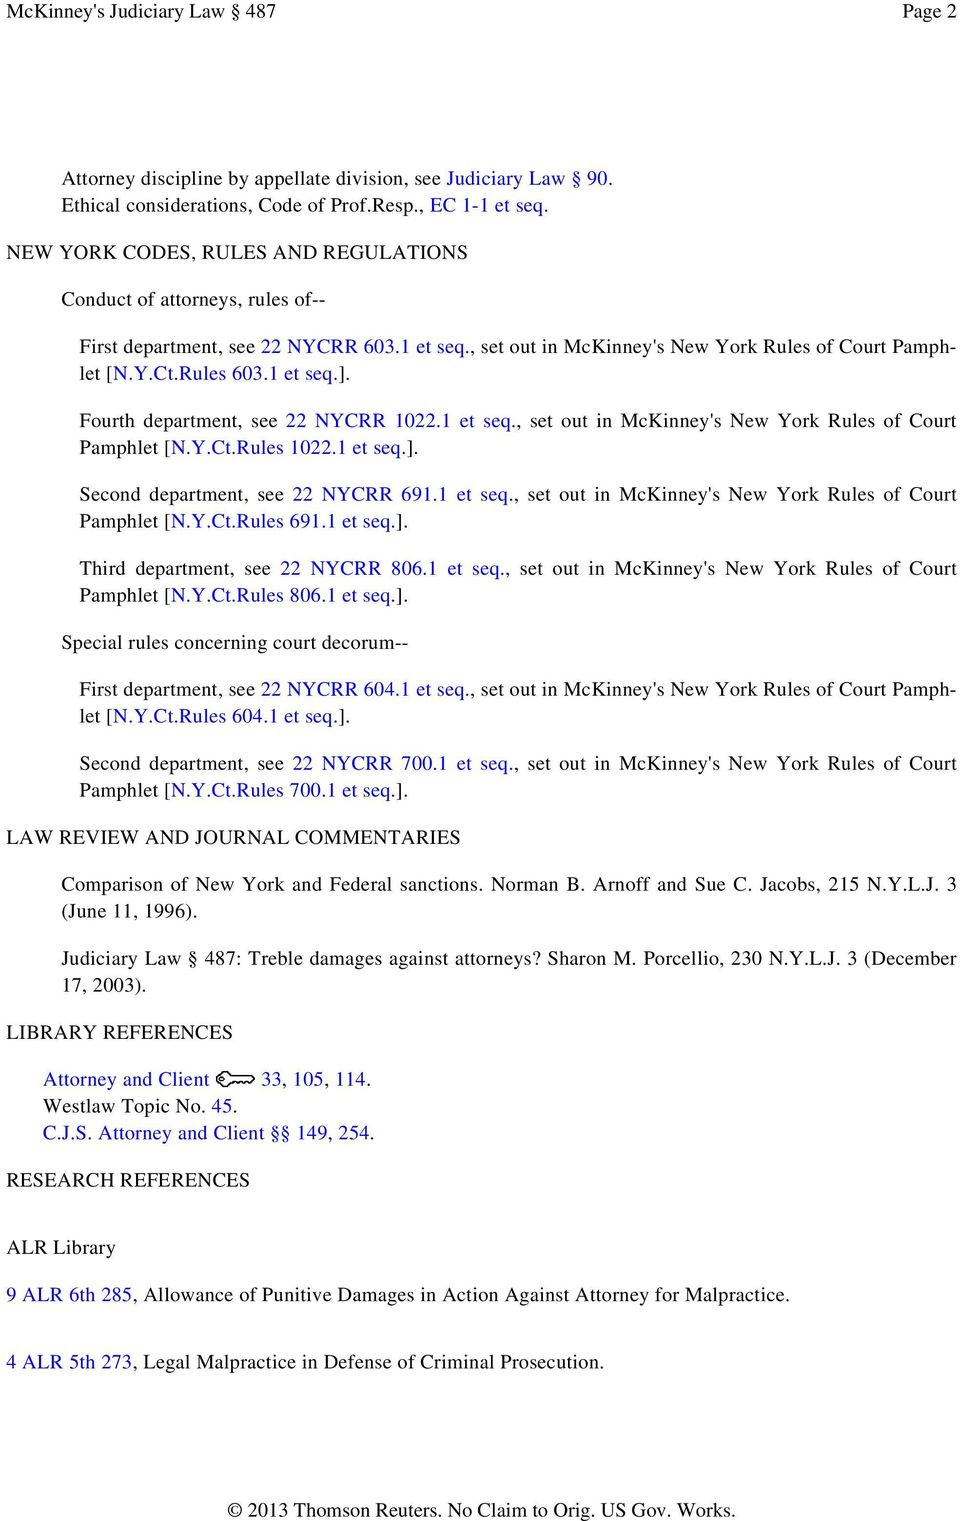 Fourth department, see 22 NYCRR 1022.1 et seq., set out in McKinney's New York Rules of Court Pamphlet [N.Y.Ct.Rules 1022.1 et seq.]. Second department, see 22 NYCRR 691.1 et seq., set out in McKinney's New York Rules of Court Pamphlet [N.Y.Ct.Rules 691.